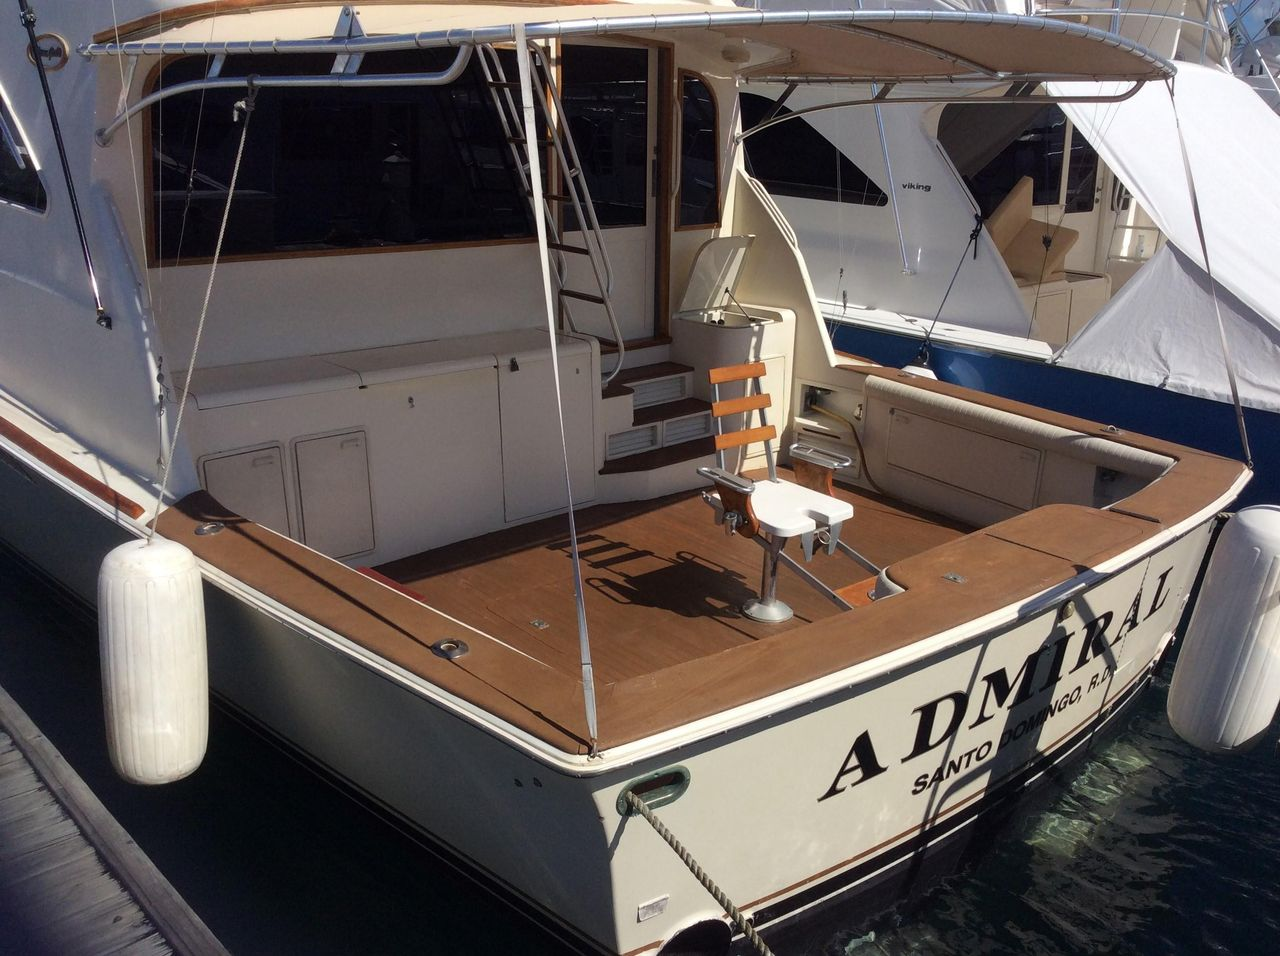 1995 Used Ocean Yachts Sport Fish Motor Yacht For Sale - $295,000